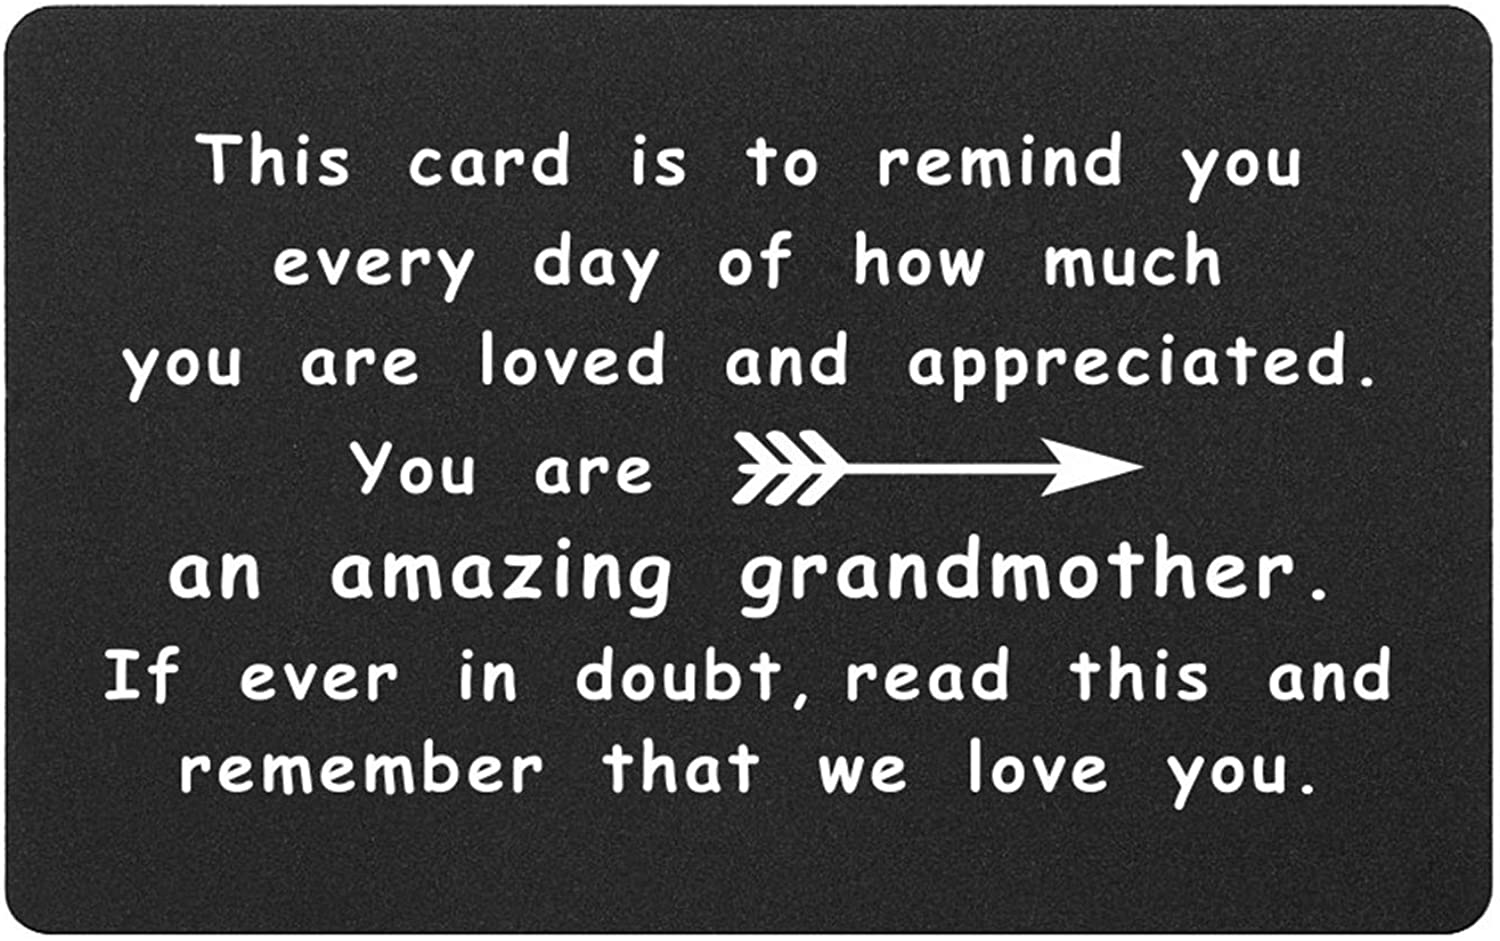 Grandma Limited time cheap sale Grandpa Wallet Weekly update Insert from Granddaughter Grandson Card